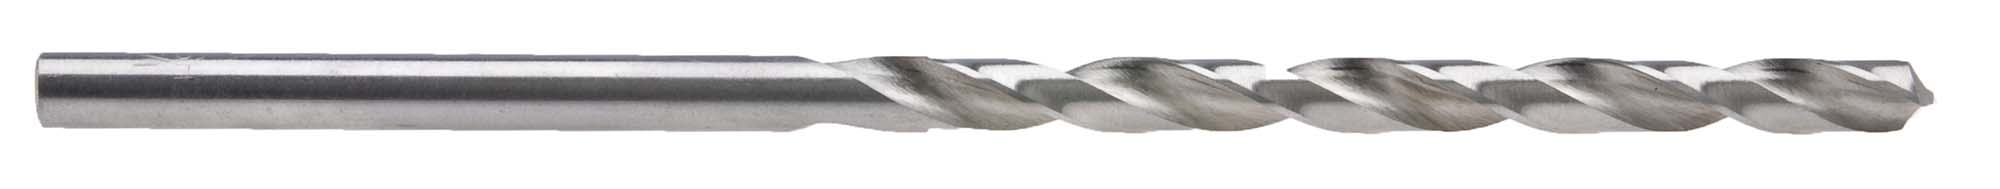 "3/4""  ""Taper Length"" Long Straight Shank Drill Bit, 9 3/4"" Overall Length, High Speed Steel"